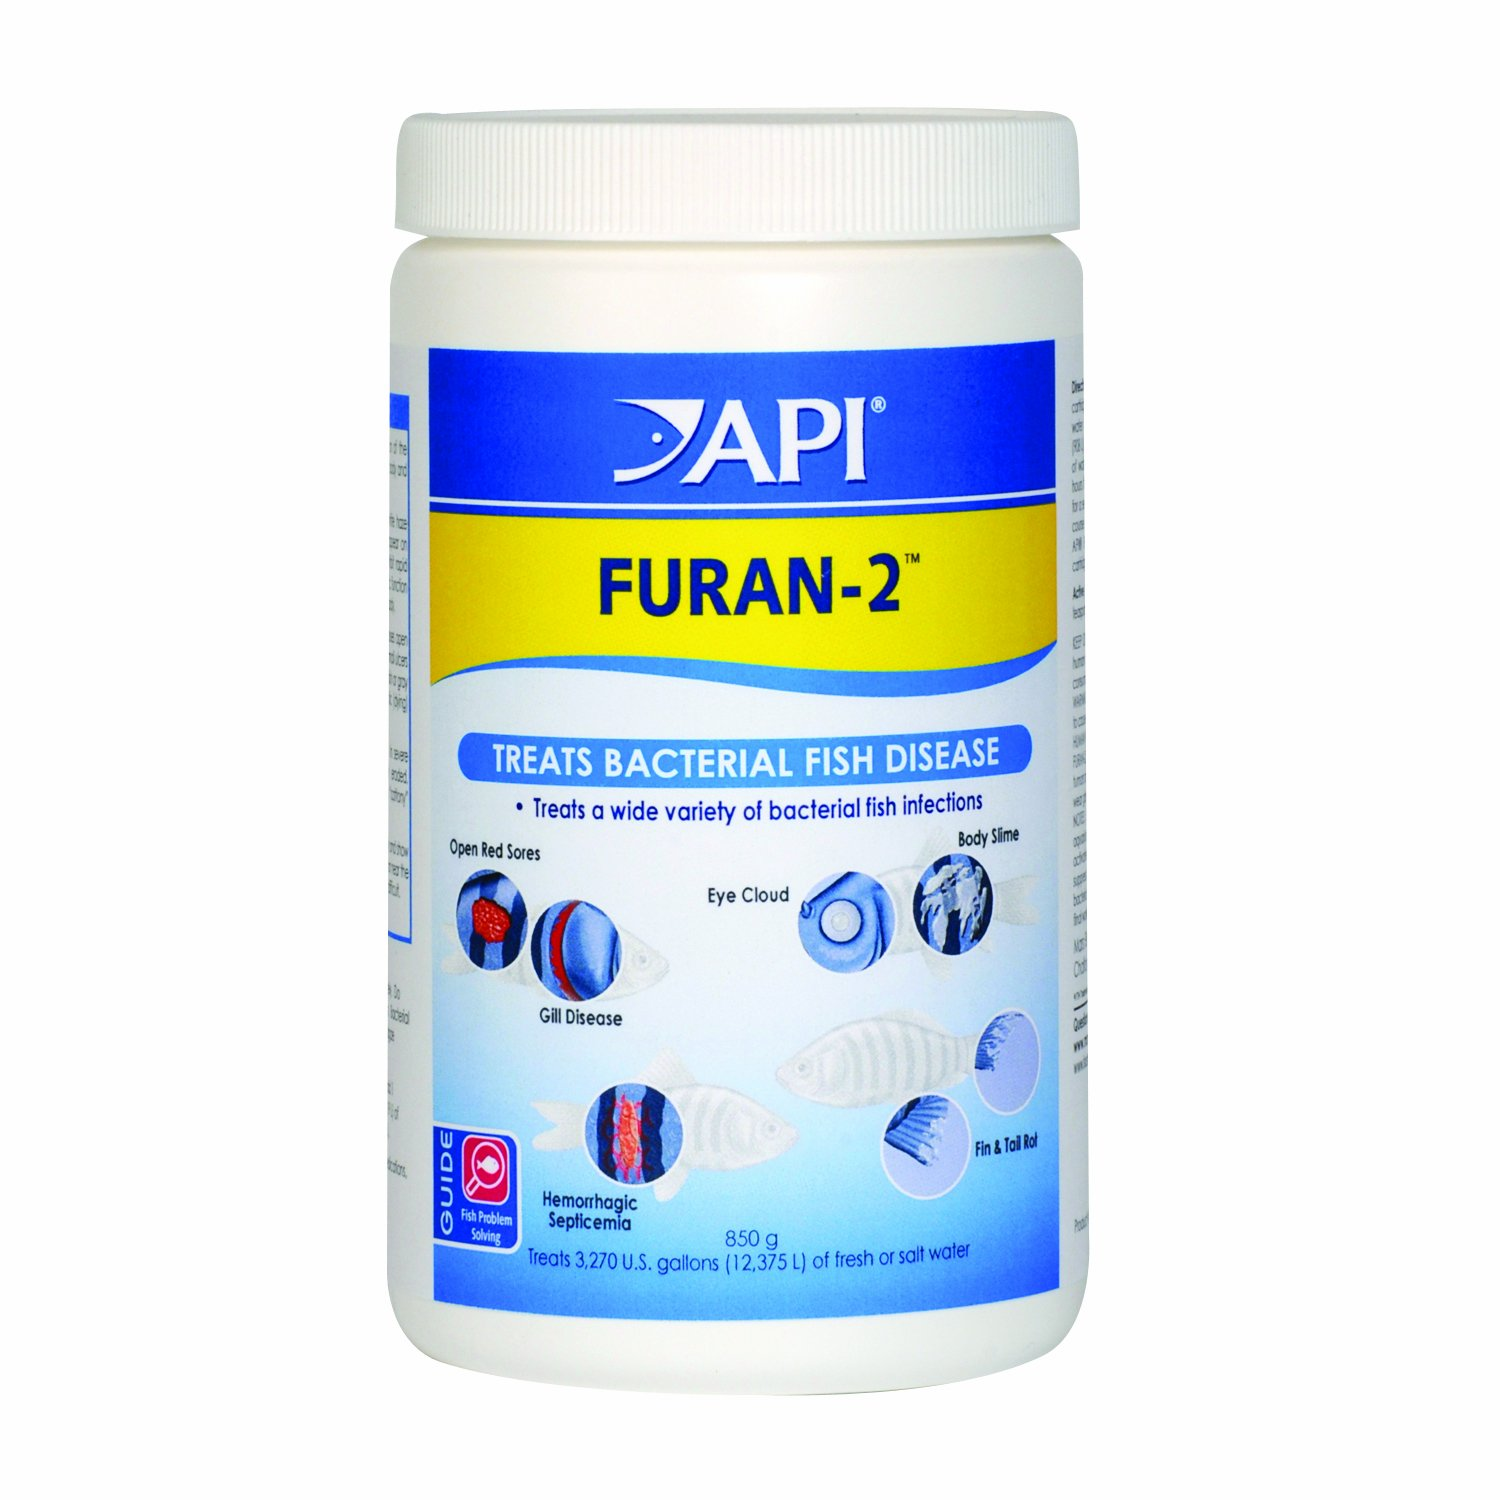 API FURAN-2 Fish Powder Medication 30-Ounce Bulk Box by API